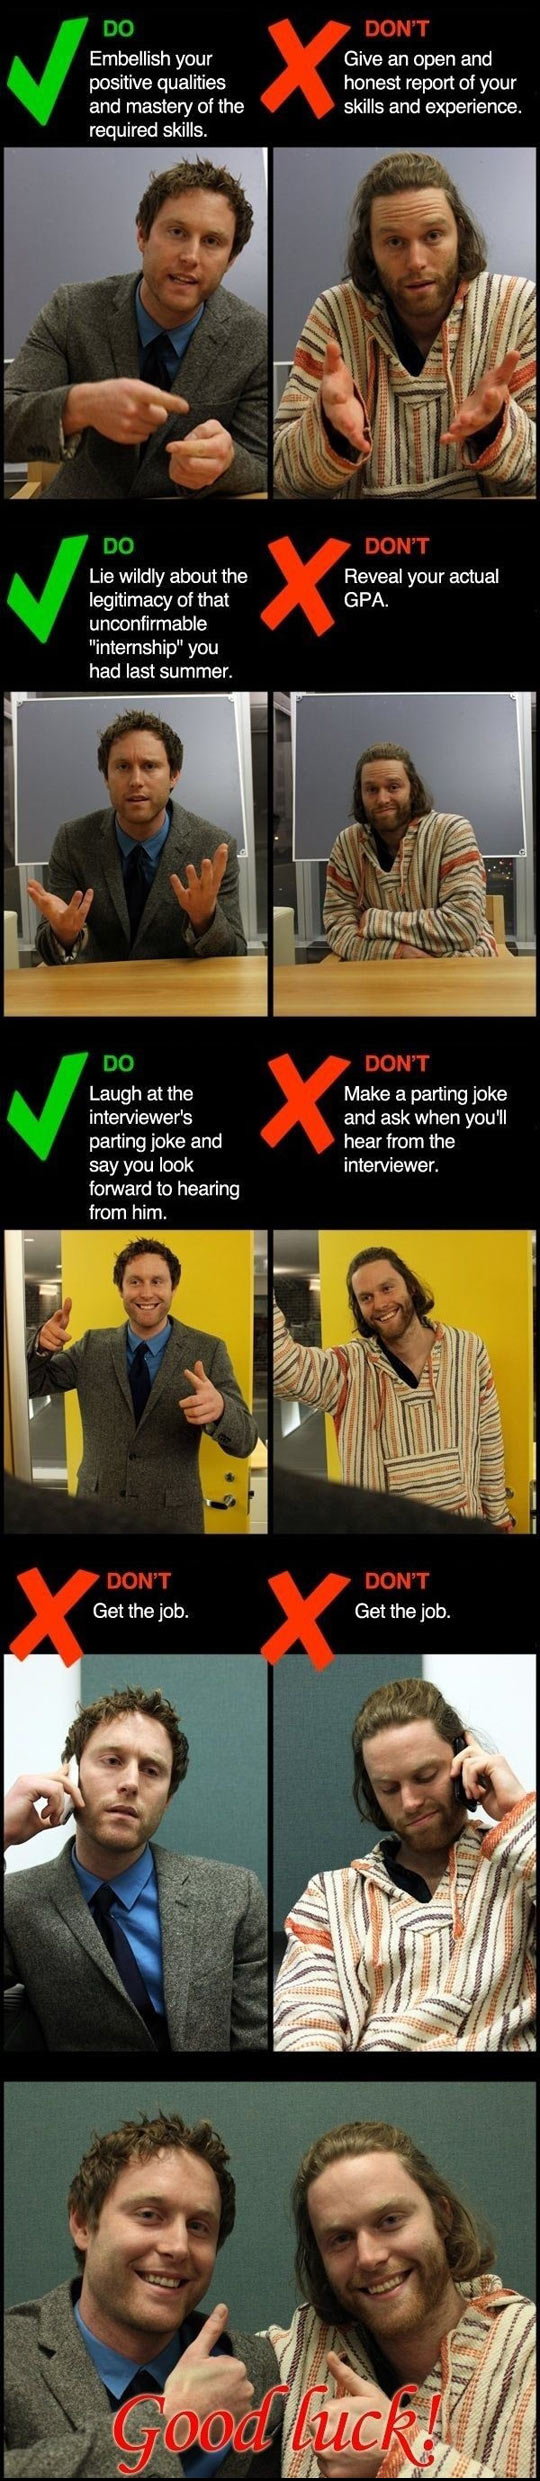 what-not-to-do-in-a-job-interview2